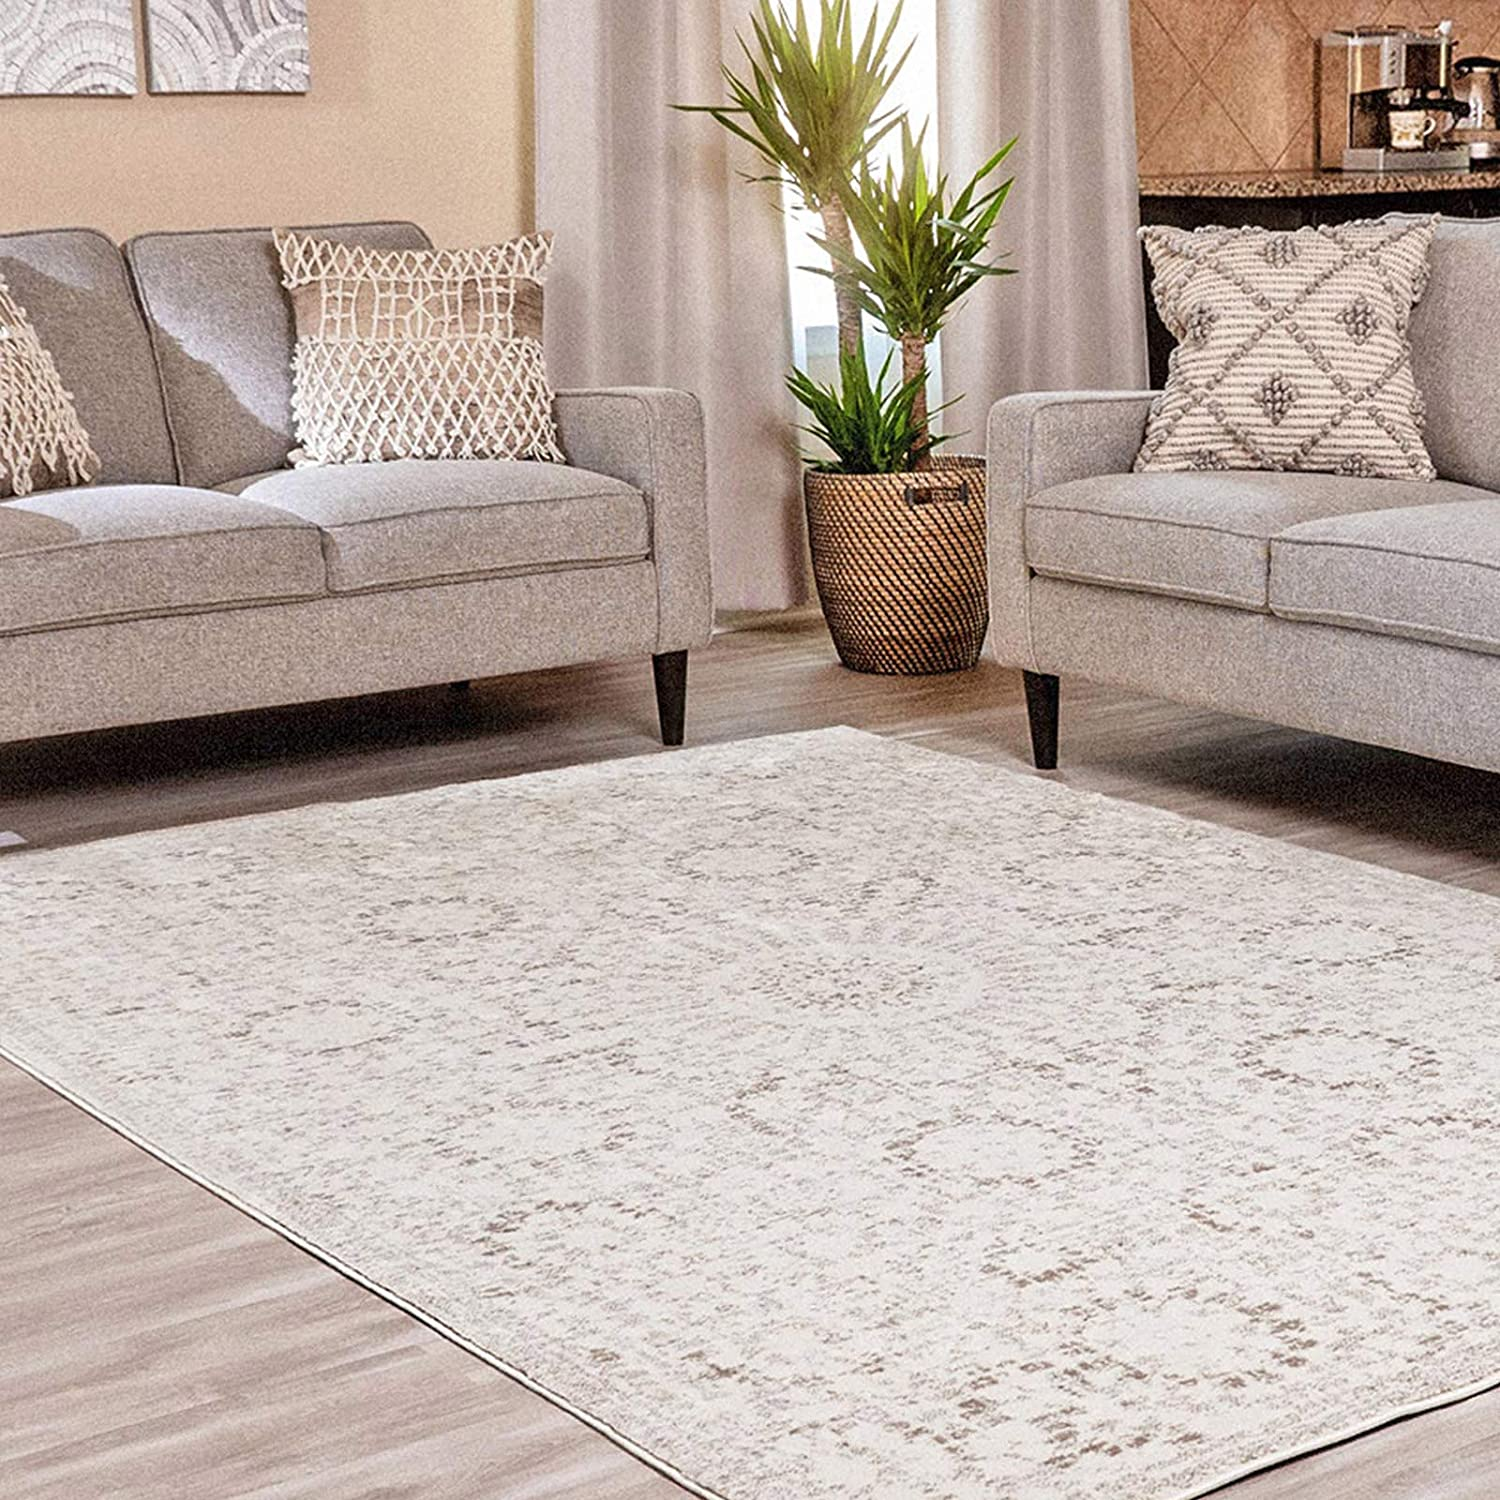 Ophanie Modern Boho Chic Area Rug Carpet, Thick Area Rugs for Living Room, Dining Room, Bedroom, Office, 6' x 9', Beige/Grey